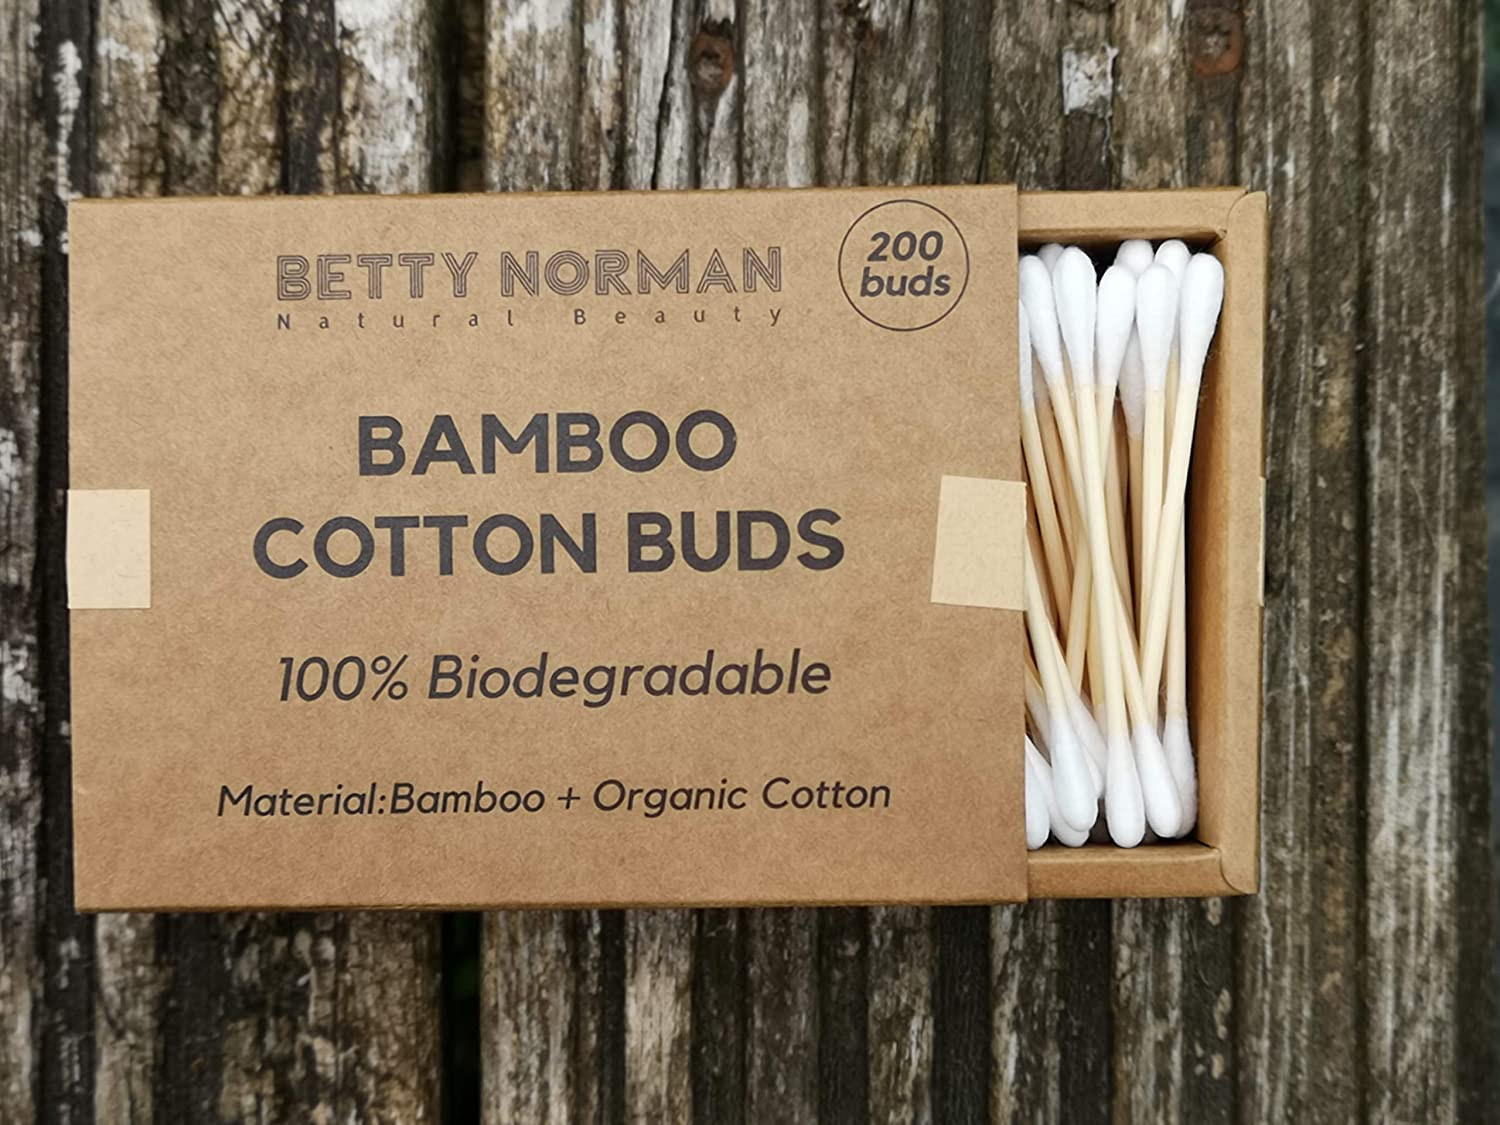 Bamboo Cotton Buds | 100% Natural | Eco-Friendly & Biodegradable | (200) by Betty Norman (Pack of 1)